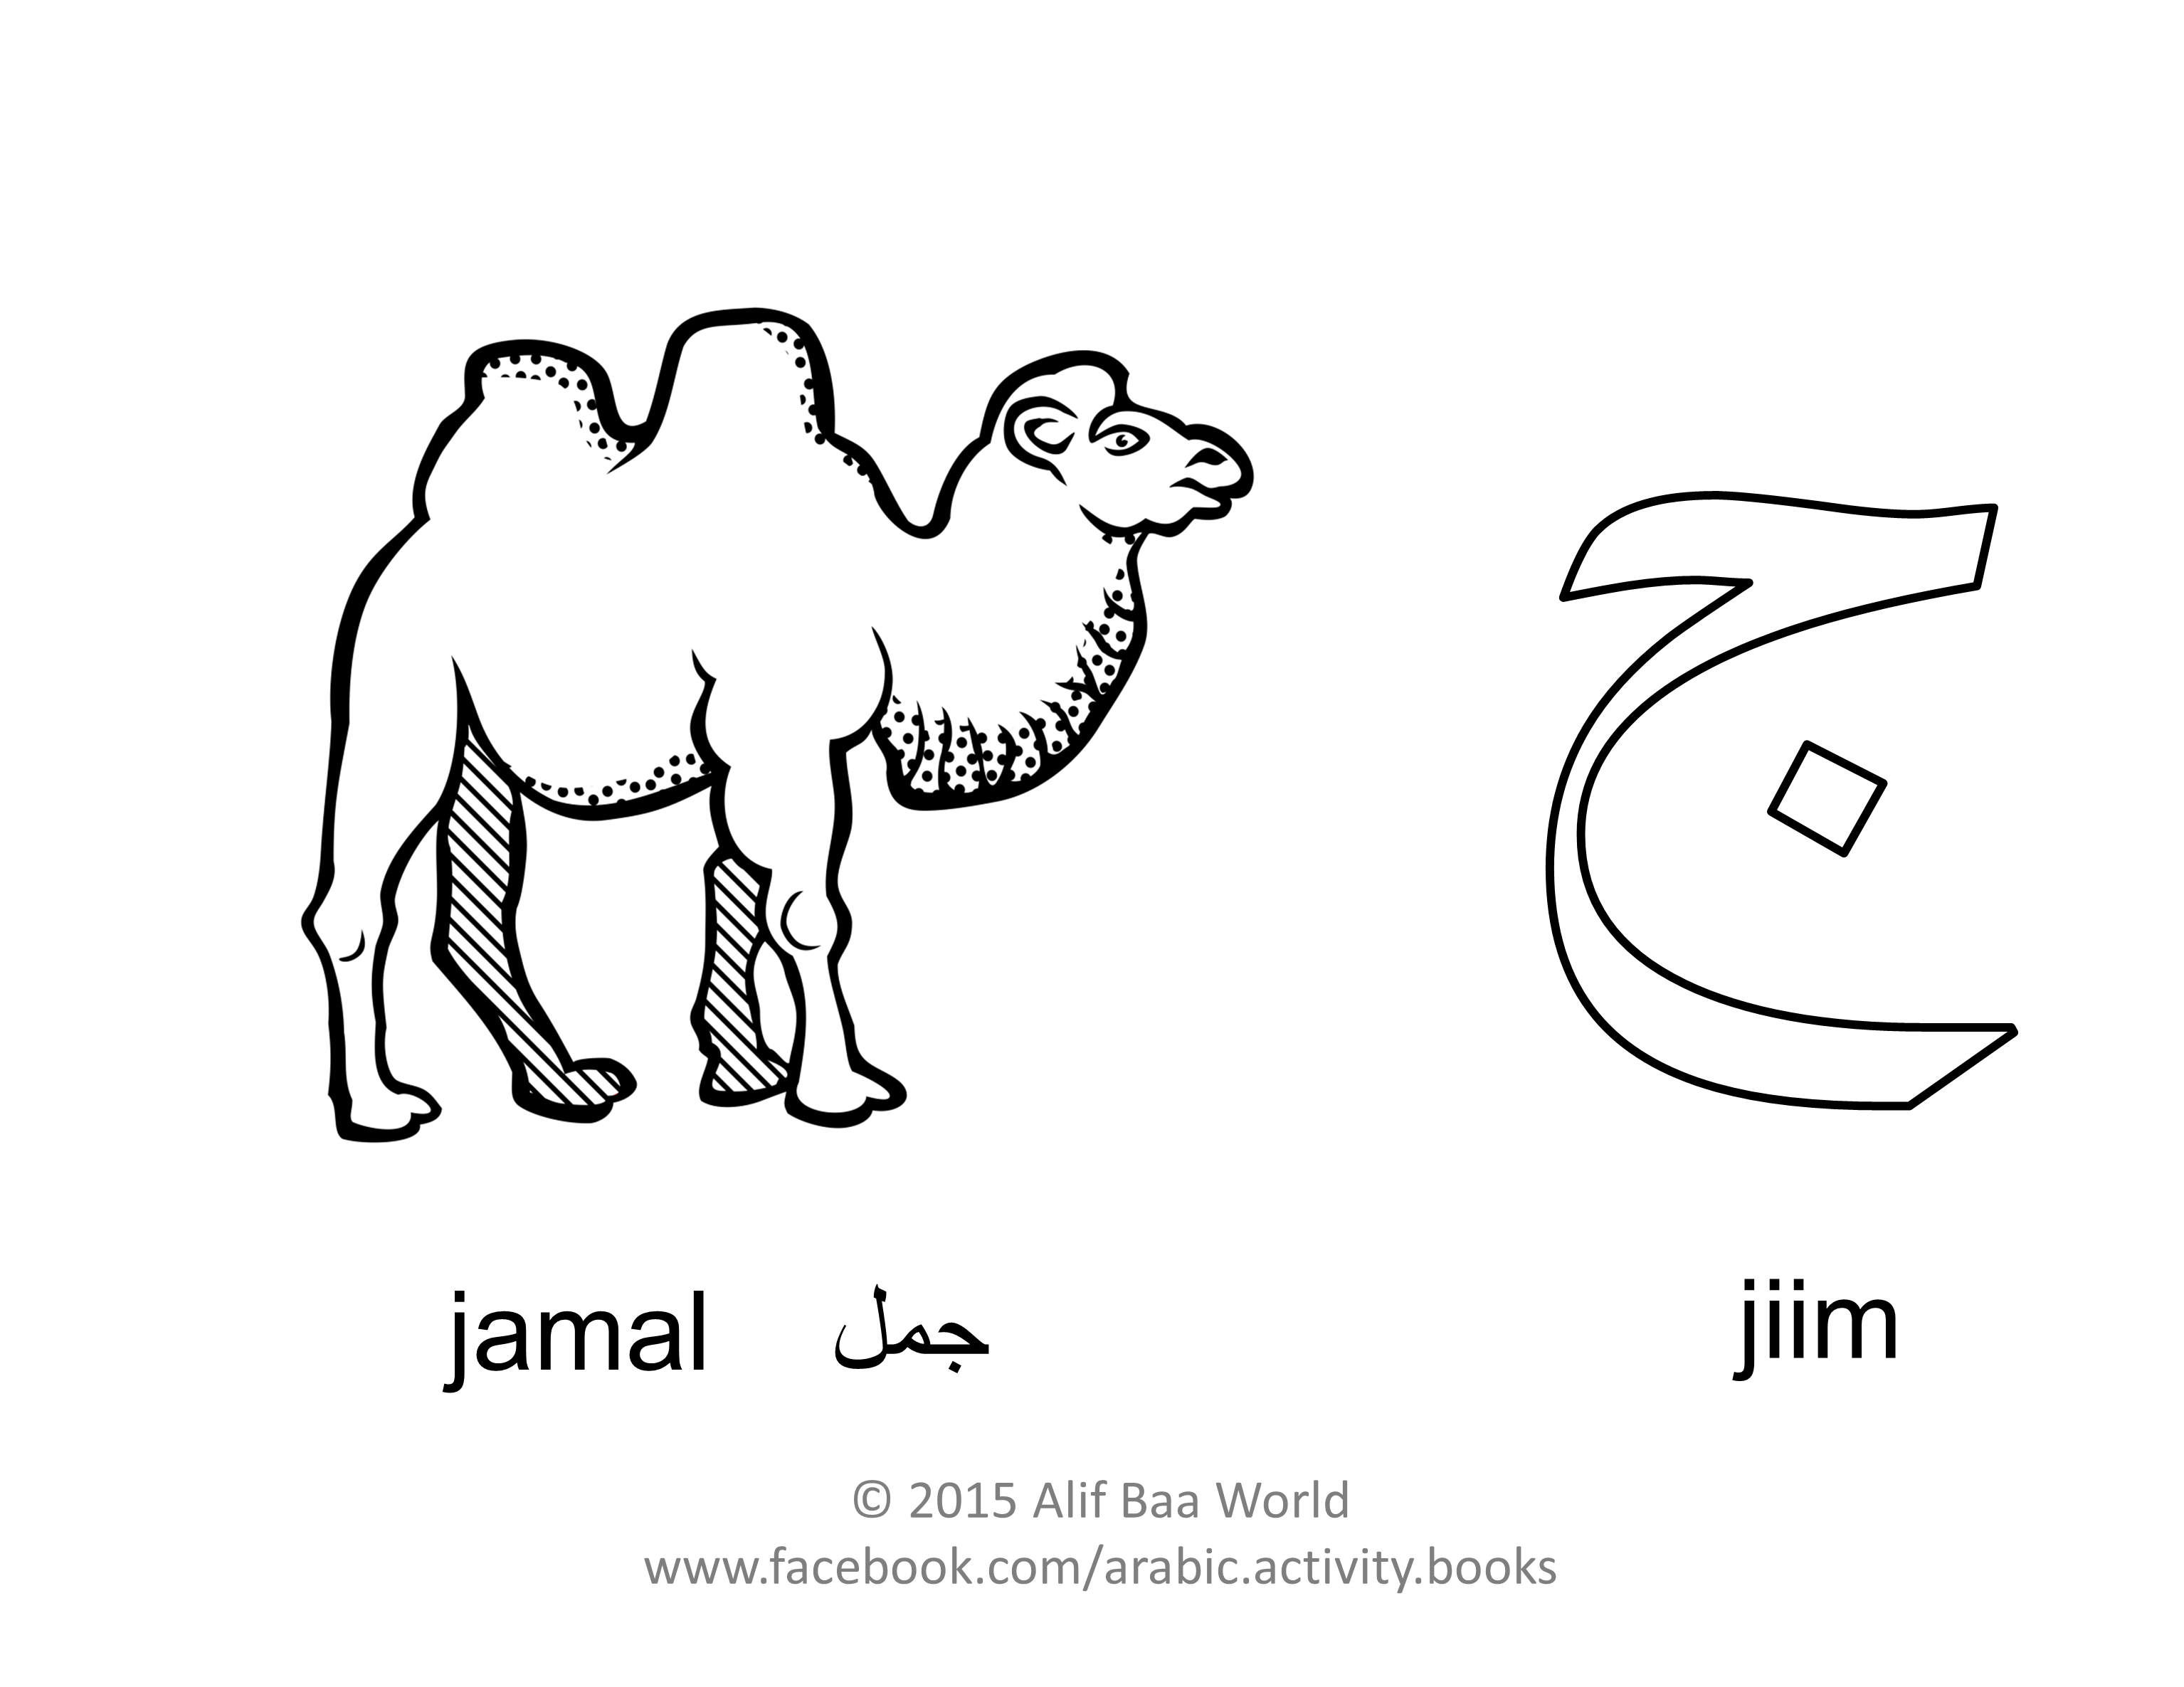 The Fifth Letter Of The Arabic Alphabet Is ج Name Jiim Sound J For جمل Arabic Alphabet Arabic Alphabet For Kids Arabic Alphabet Letters